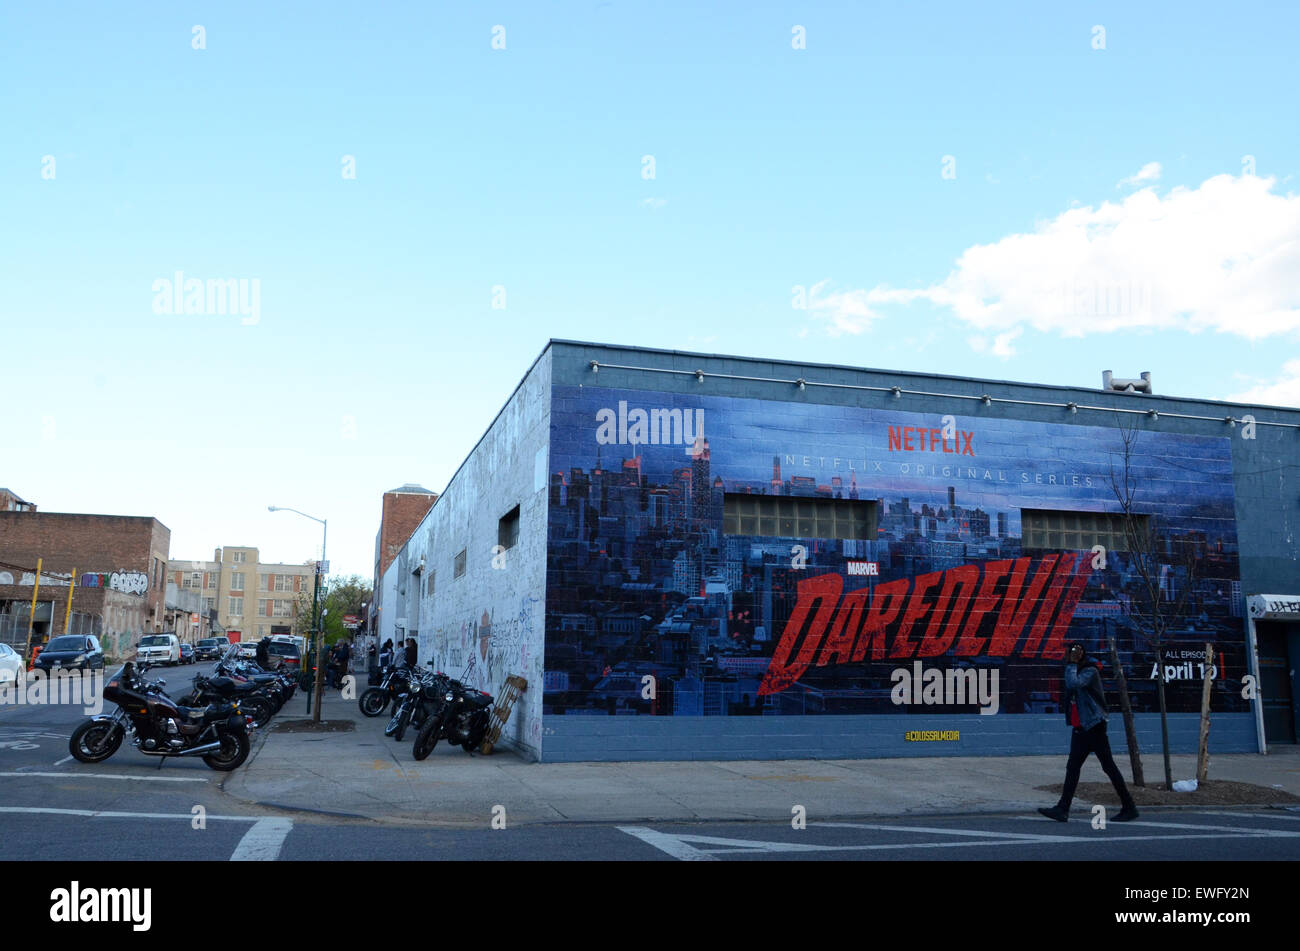 painted billboard adverts new york usa Stock Photo